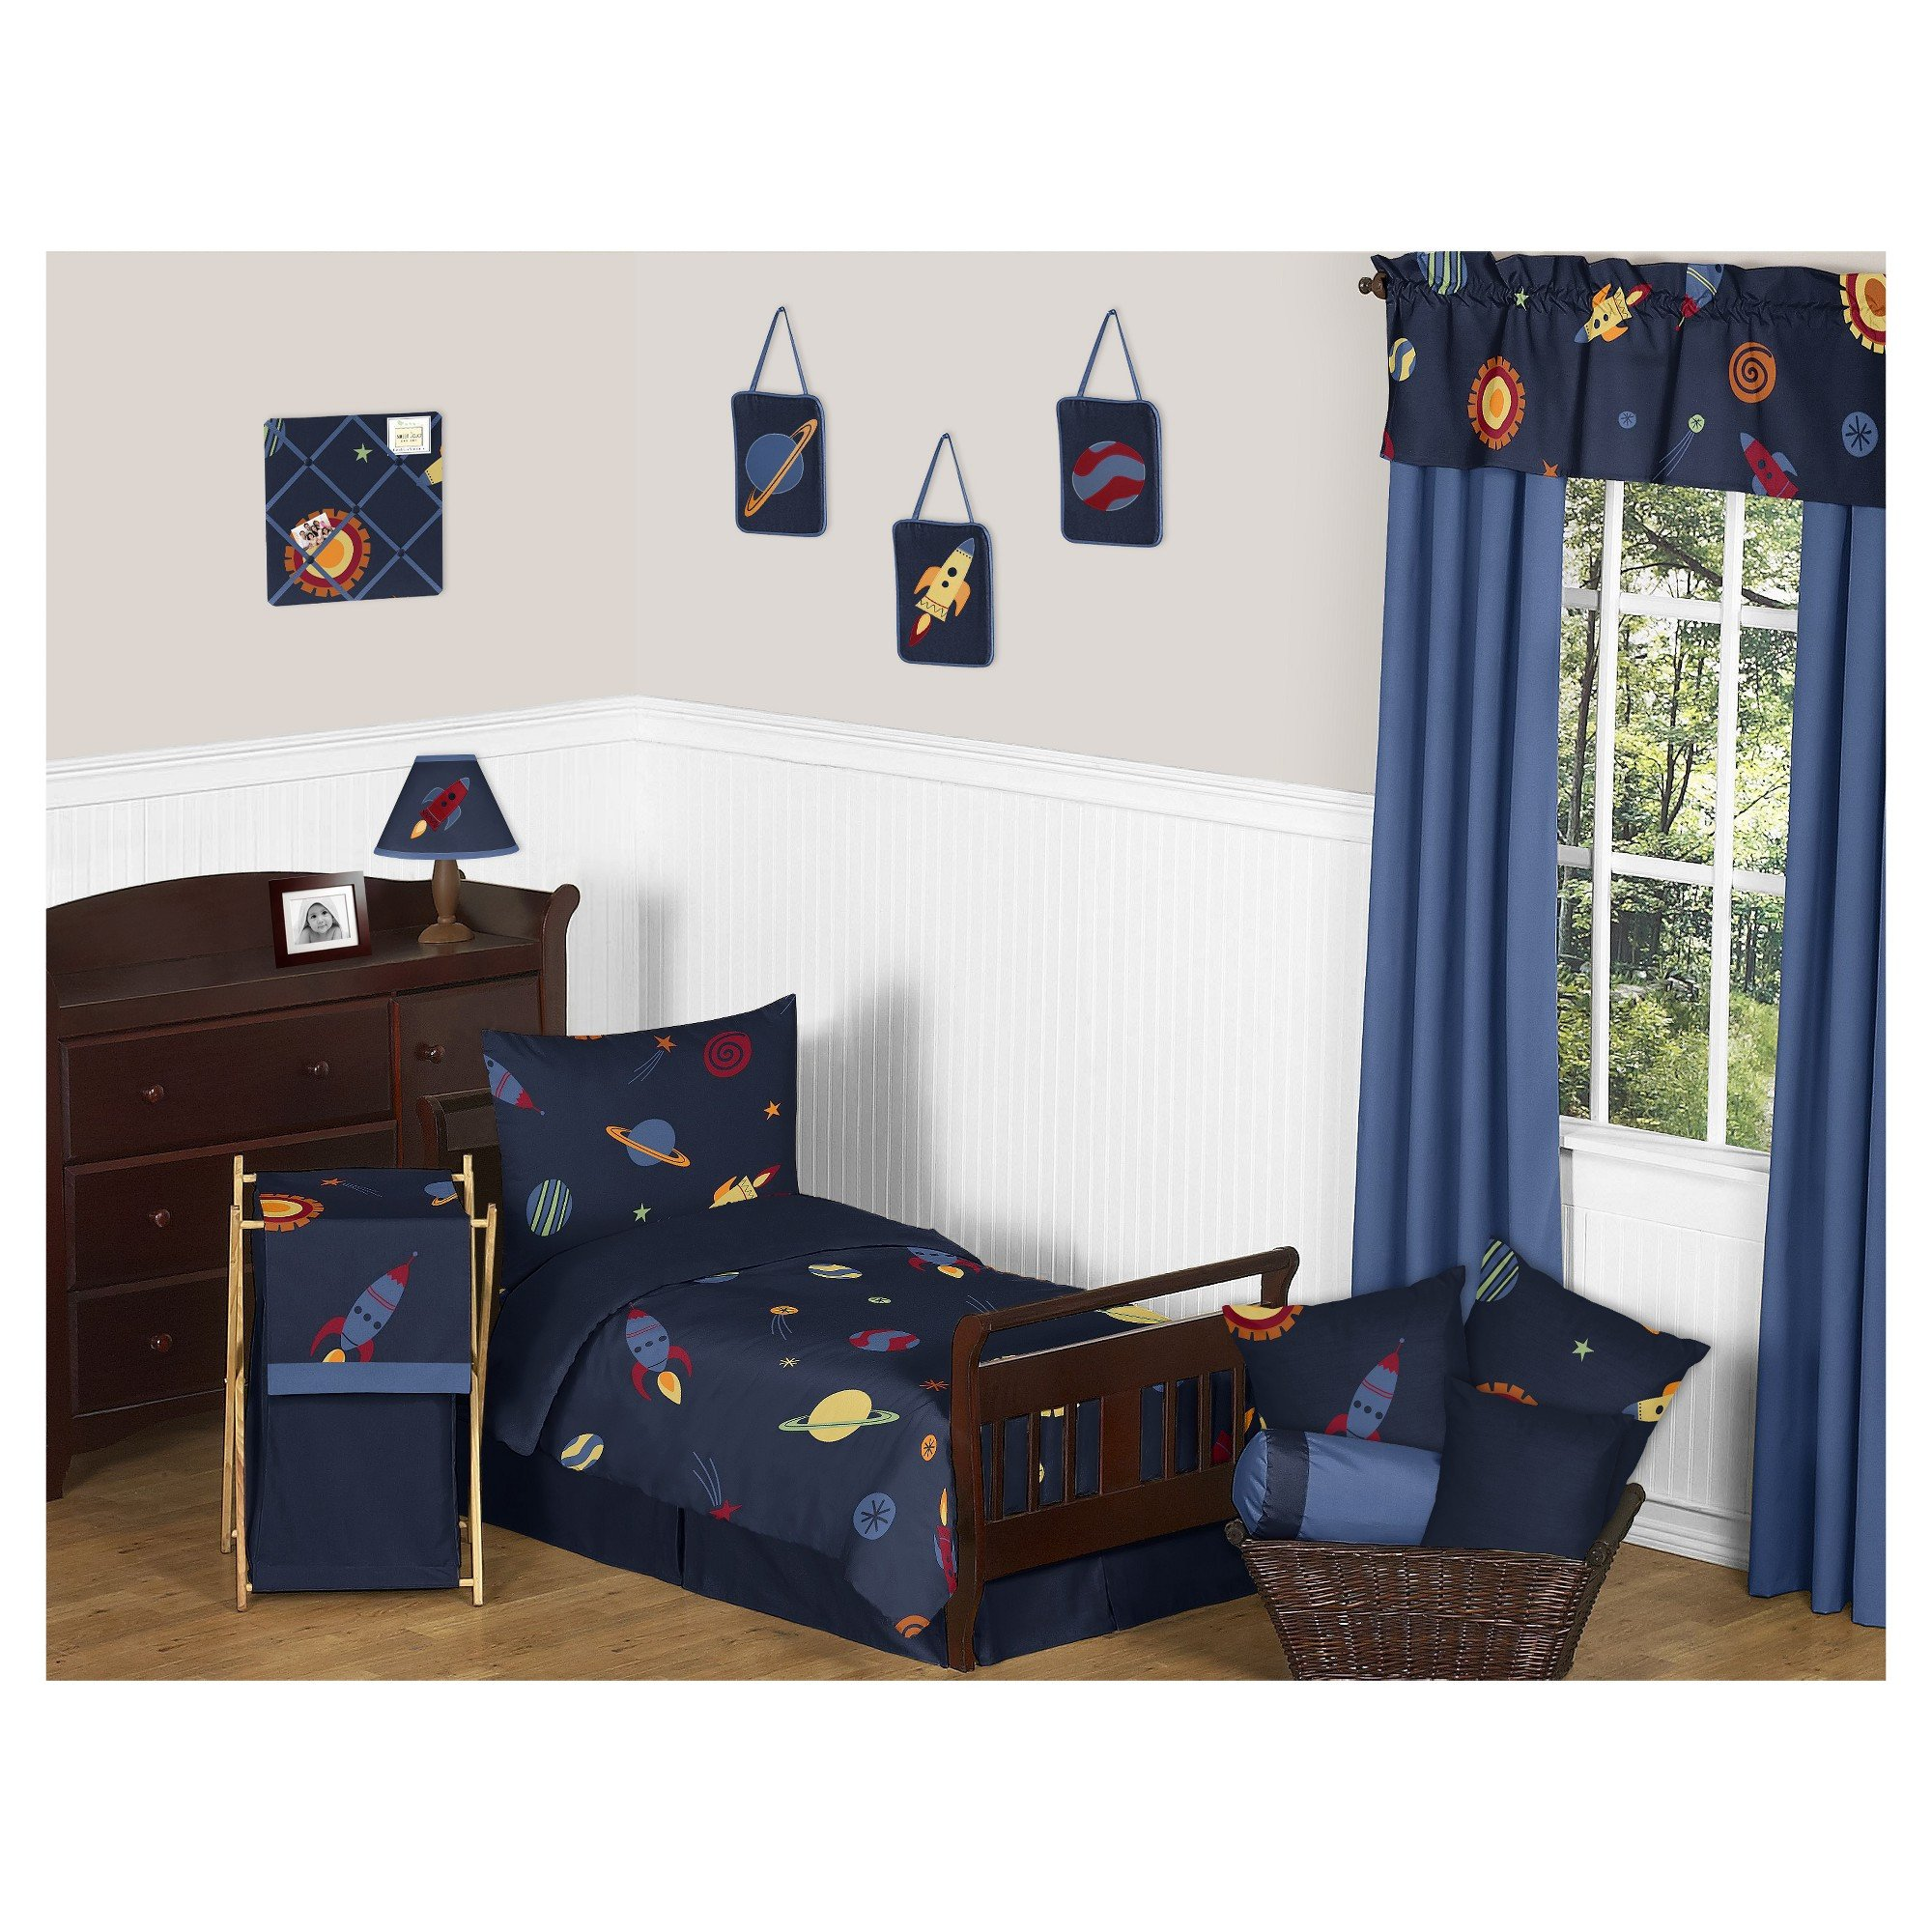 Paw Patrol Bedroom Set Unique Jojo Designs Sweet Navy Space Galaxy Bedding Set toddler